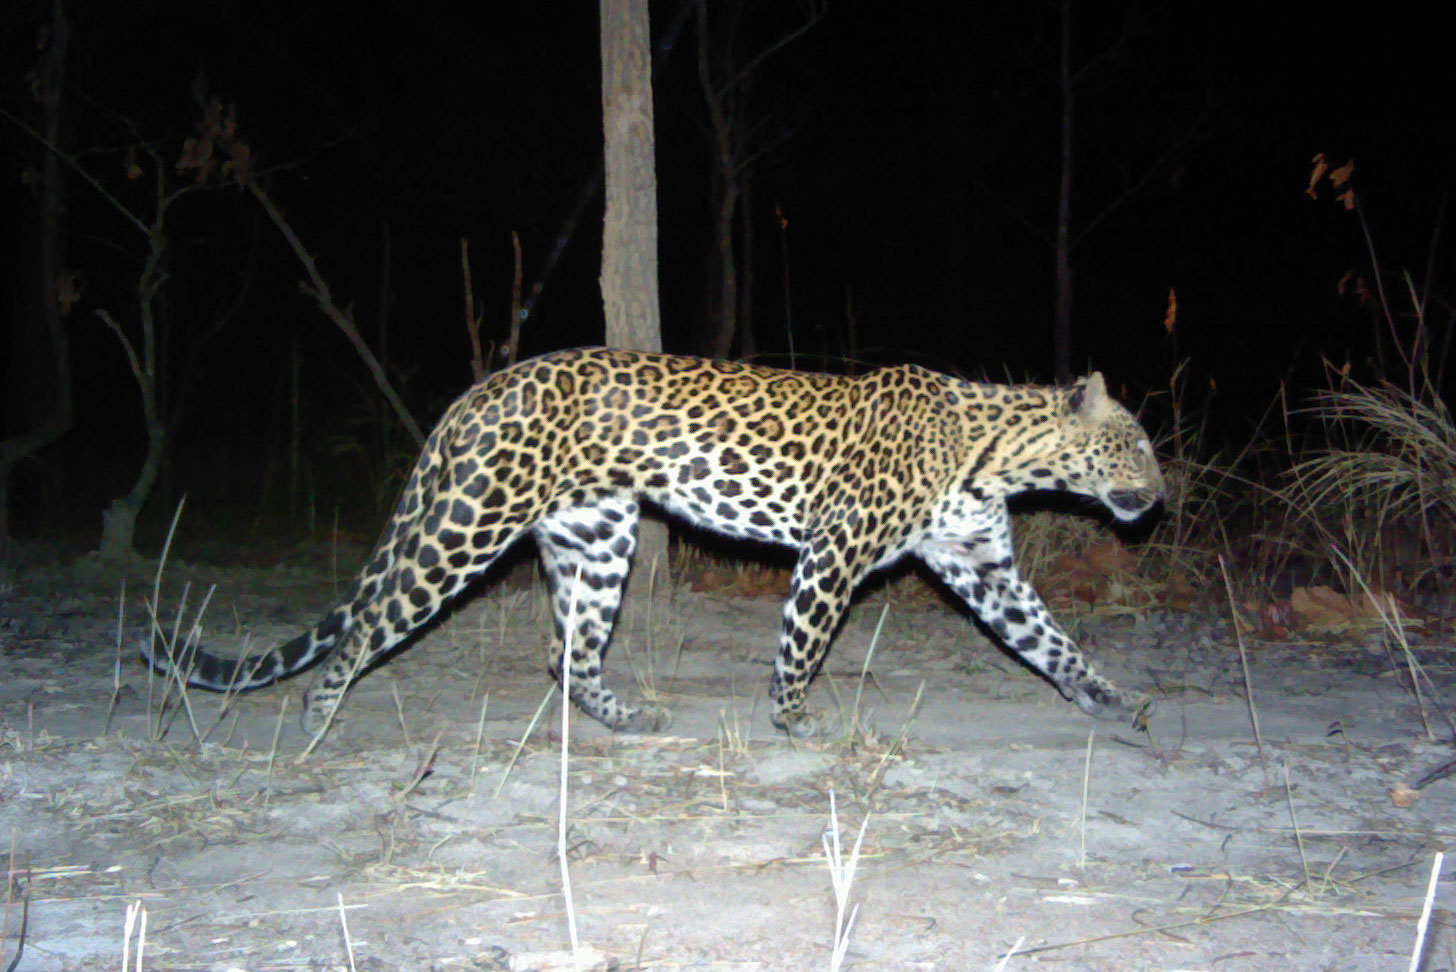 Leopard 1: Male Indochinese leopard from eastern Cambodia. Photo courtesy of Panthera, WWF Cambodia, and Forestry Administration.